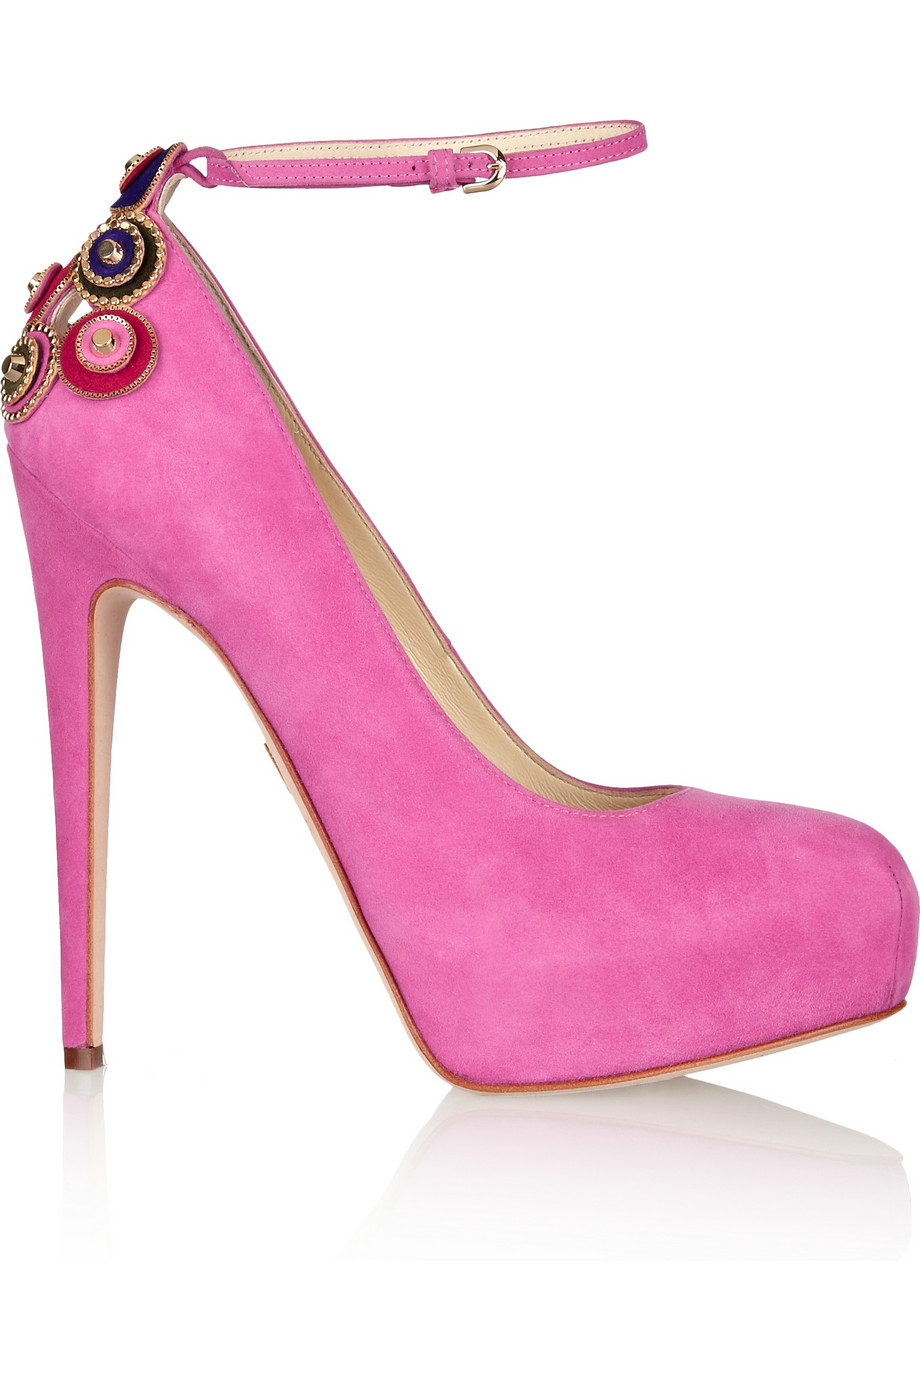 Brian atwood zenithlux embellished suede pumps – 60% at the outnet.com